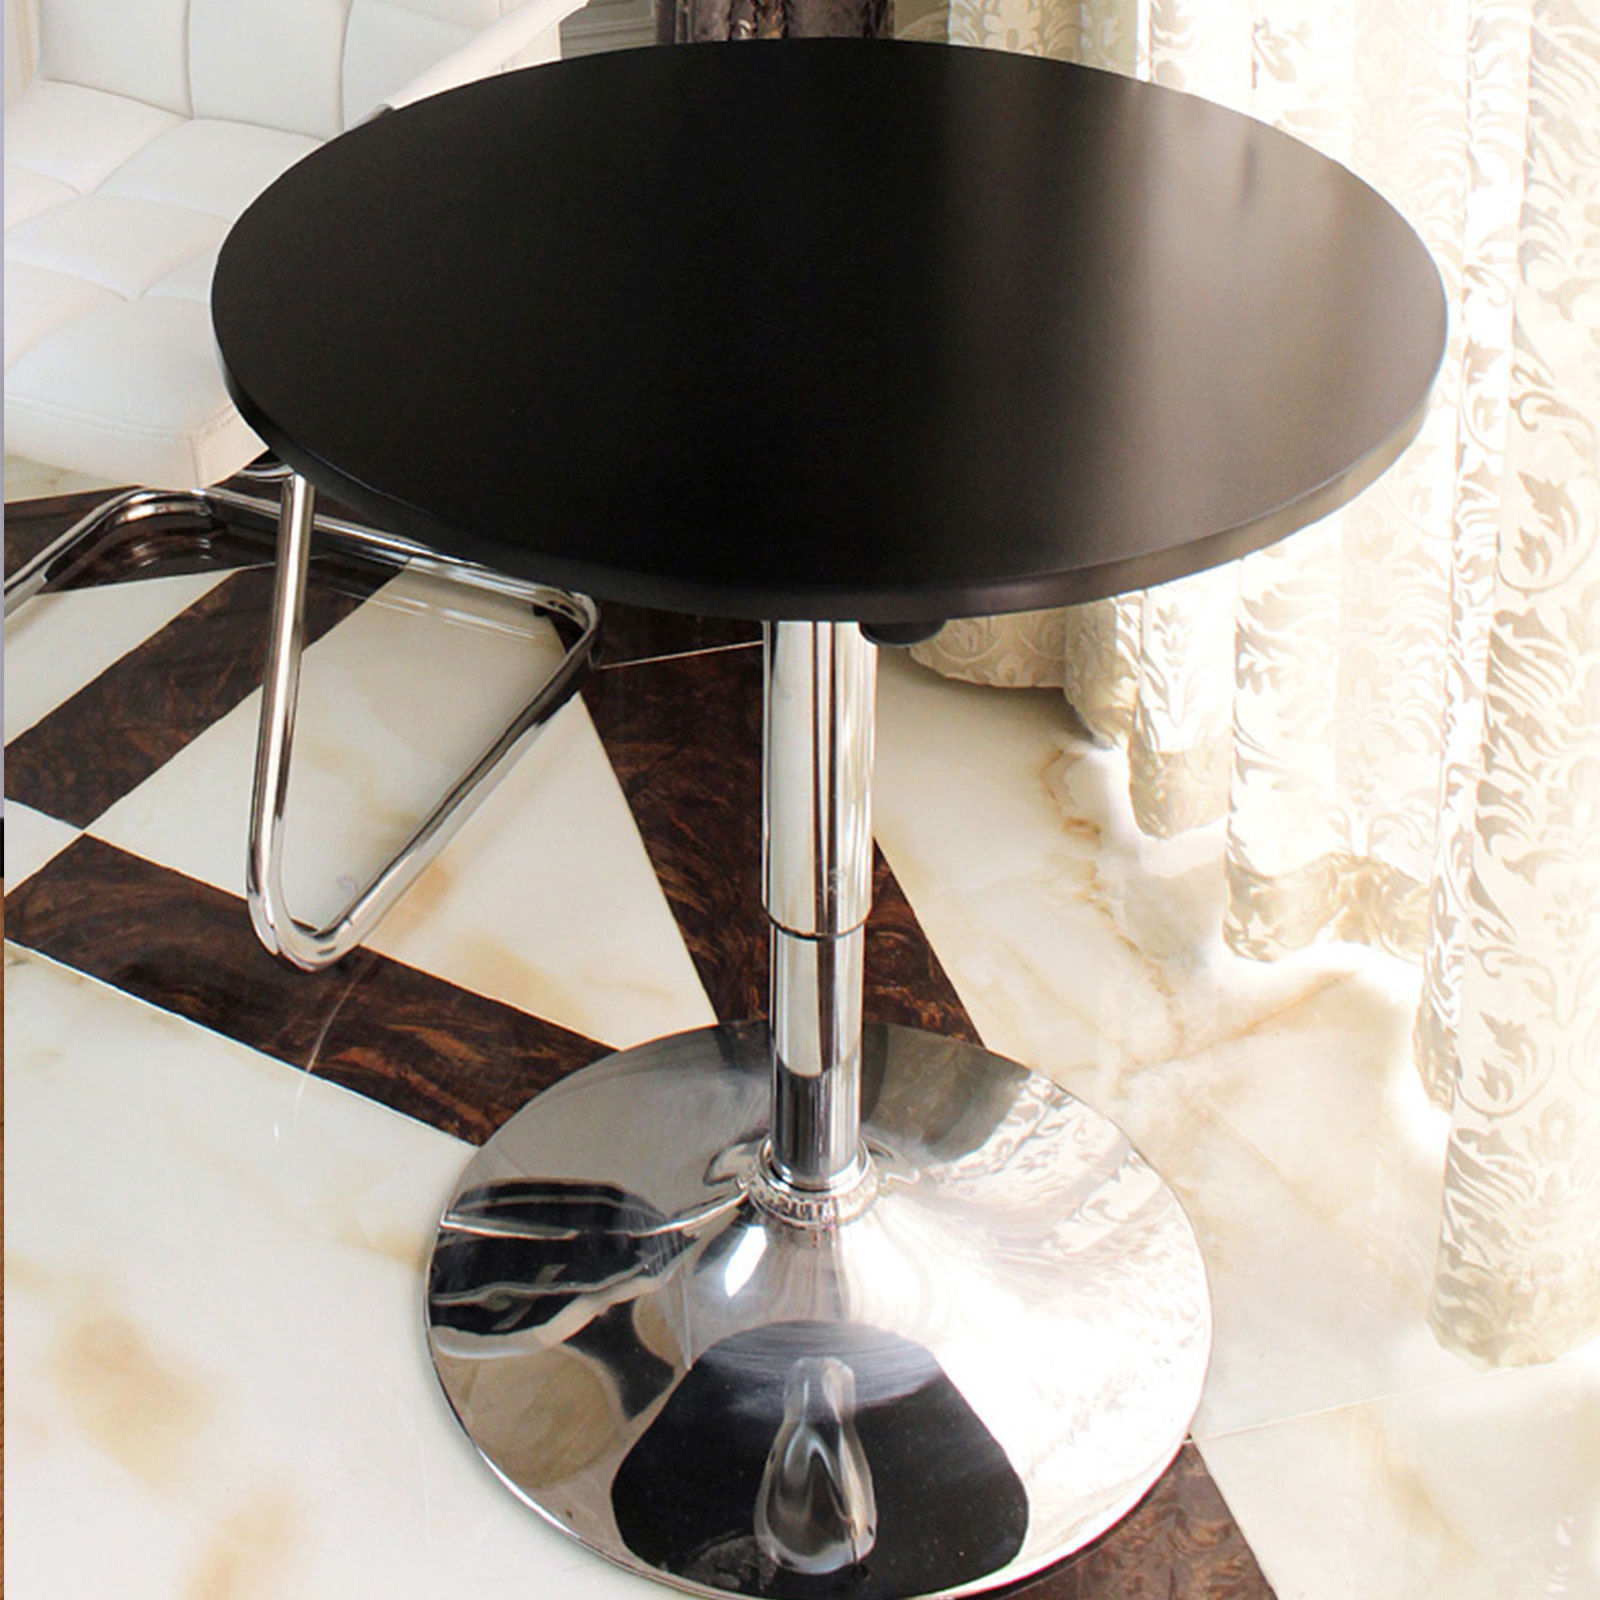 round table high bench steel basement target base pub counter stools plans adjustable height and seats pedestal industrial iron chairs pipe legs metal for wood square diy accent